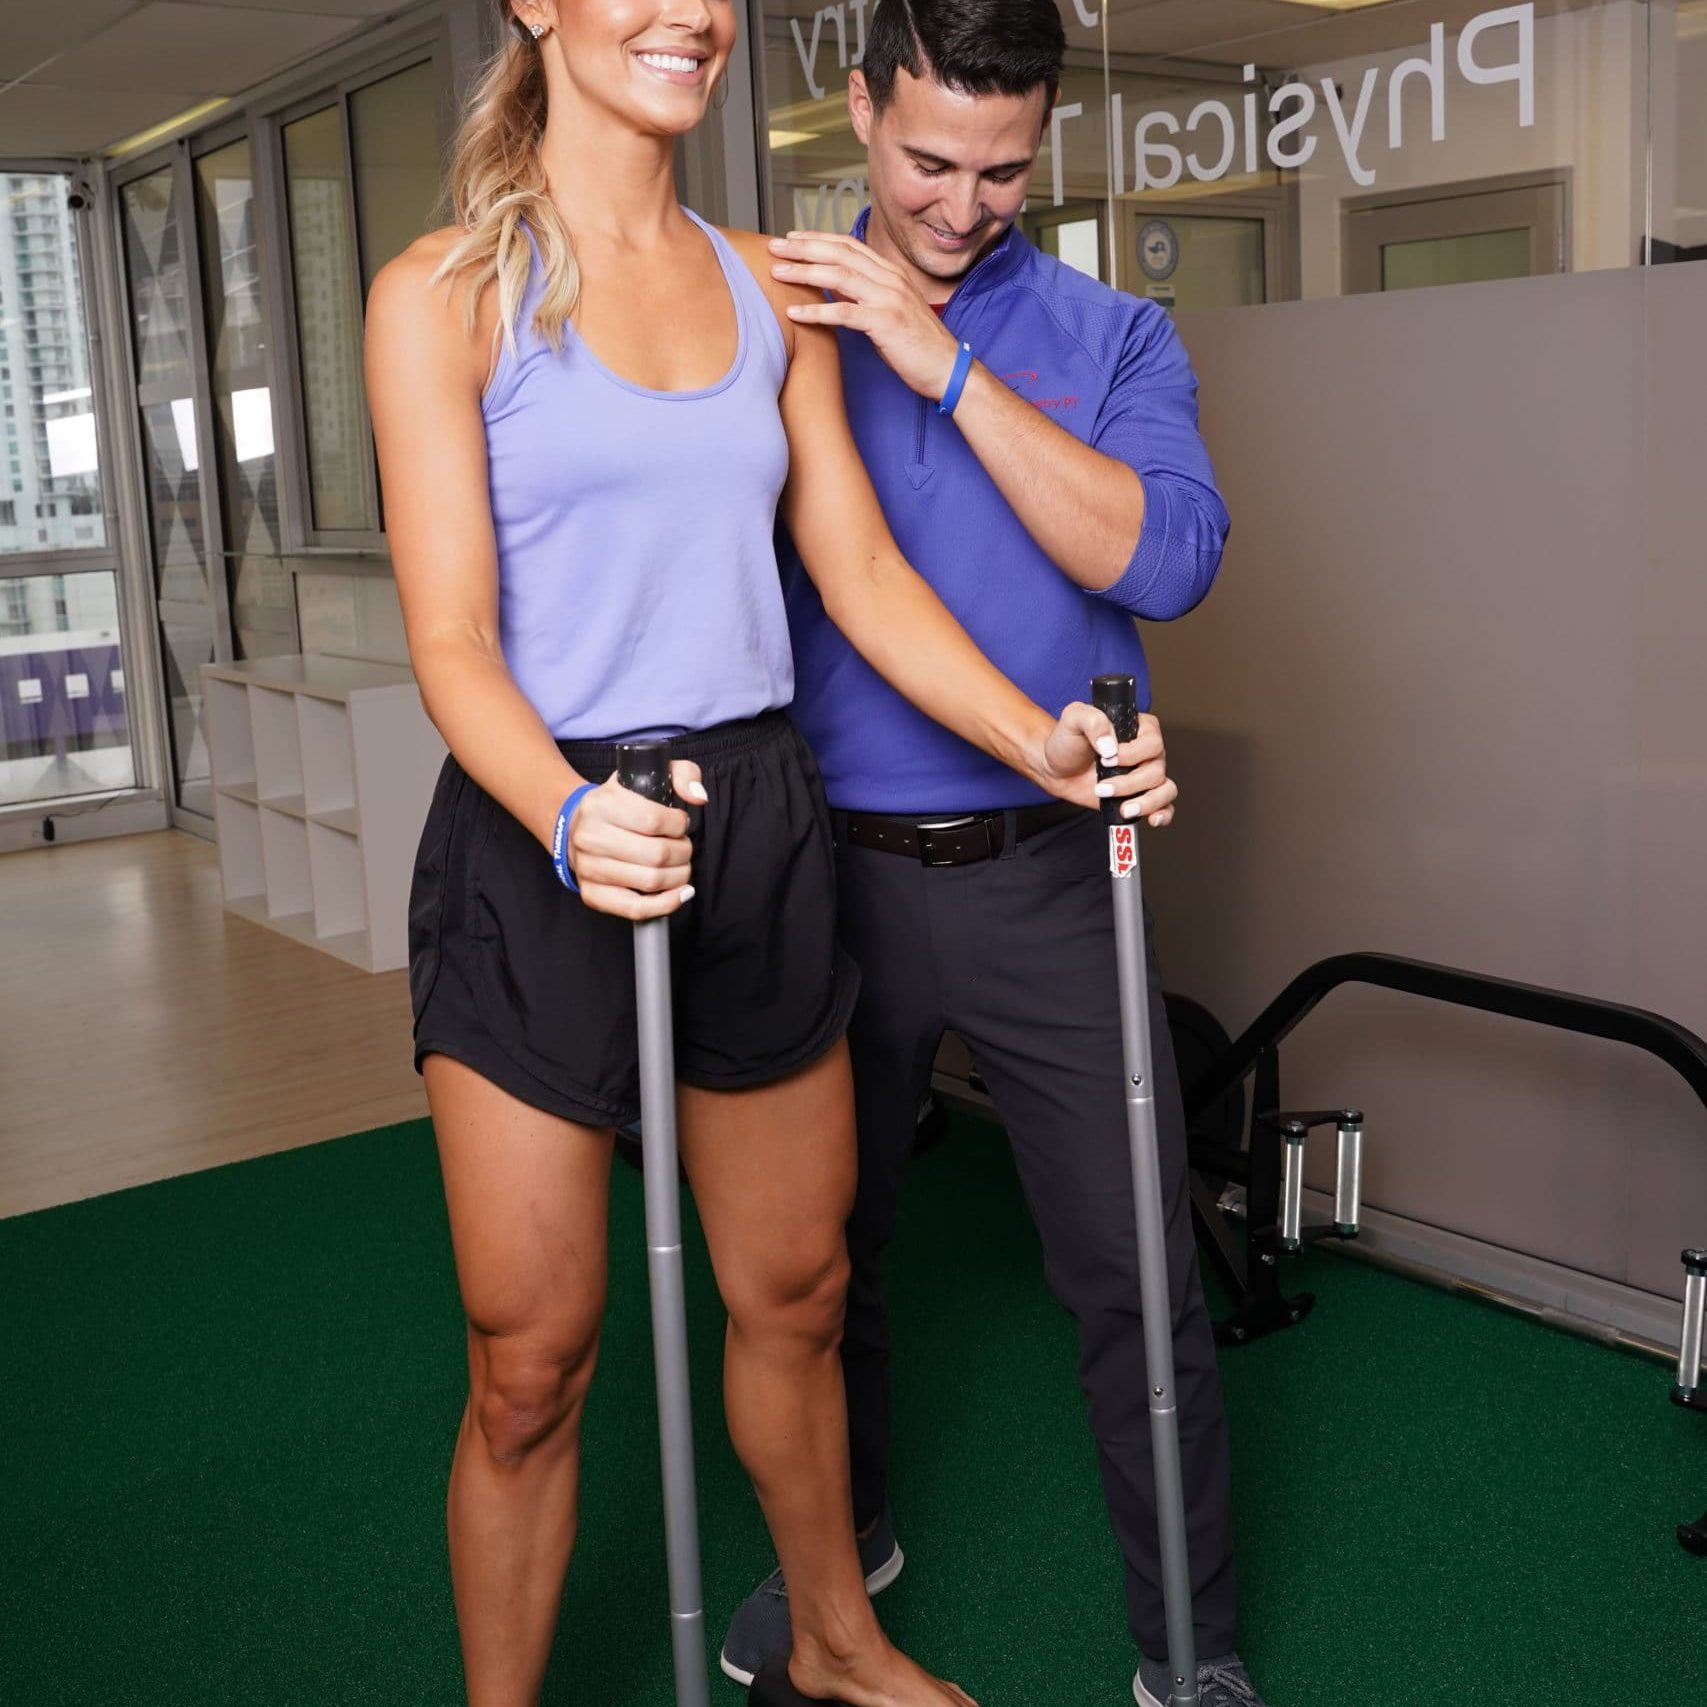 physical therapy for leg pain Miami FL